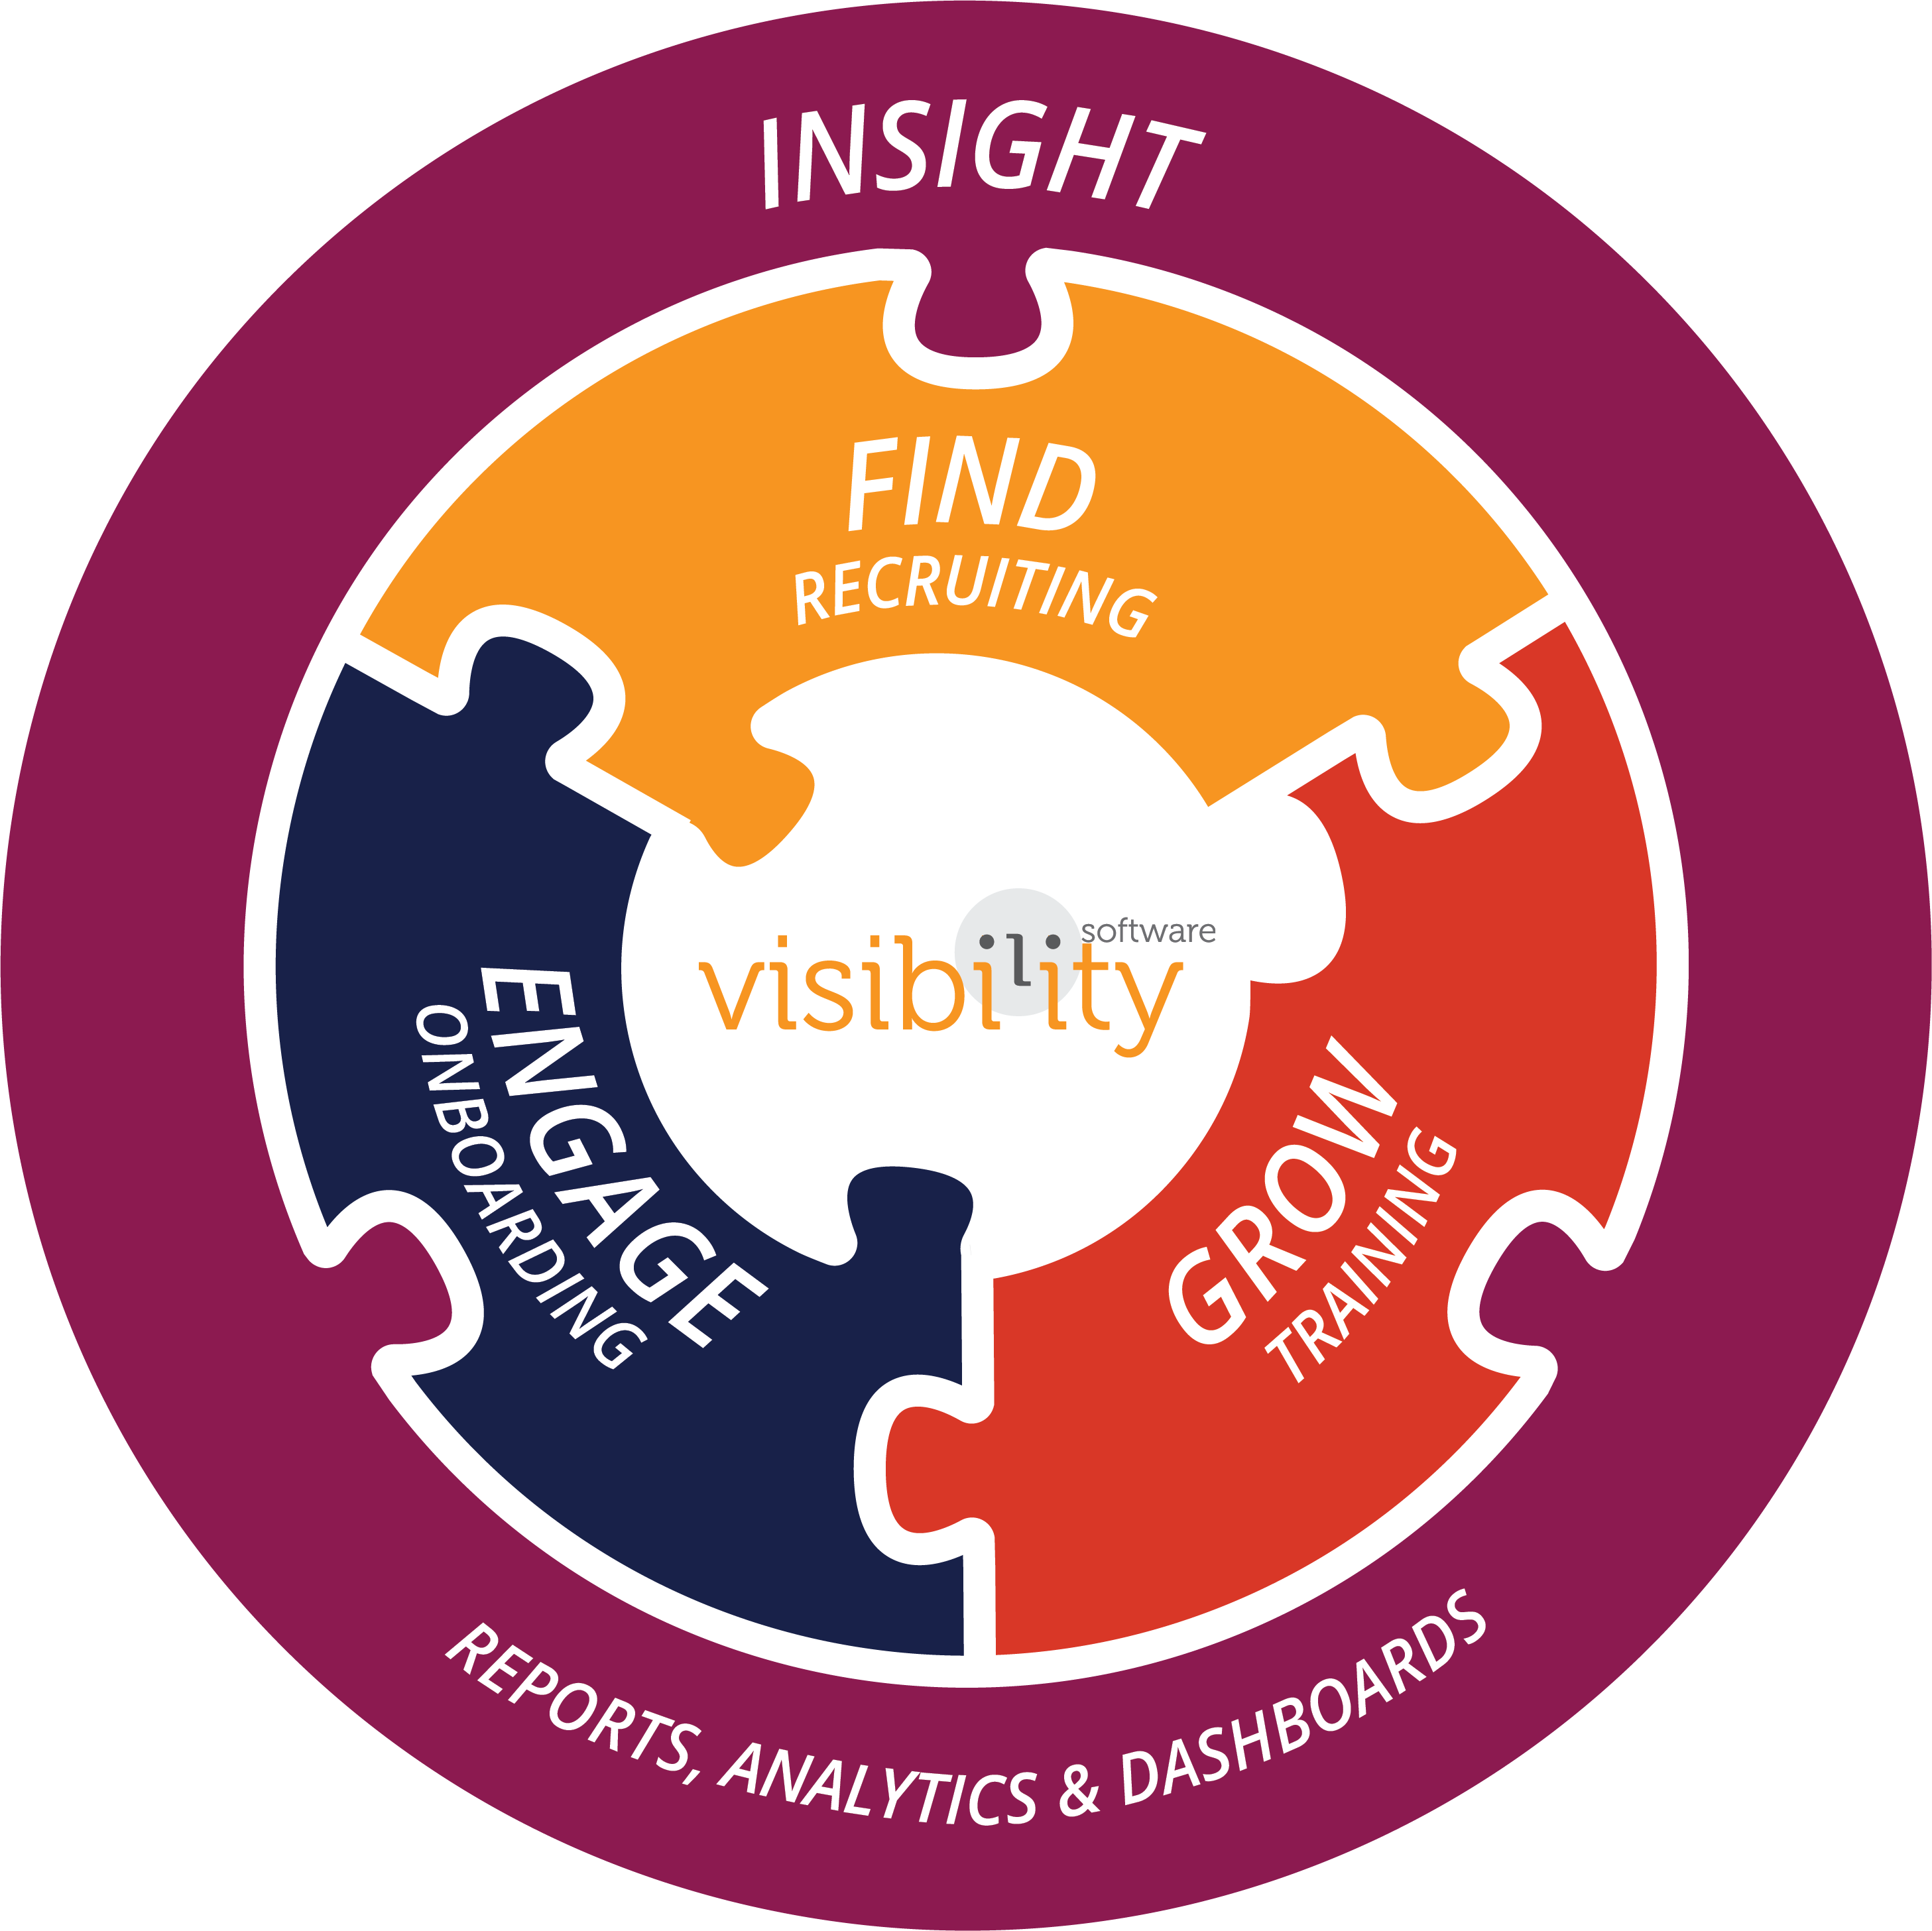 A roundel displaying visibility software's value proposition to find, engage, and grow your human resource capital and deliver the insight for smarter talent management decision-making